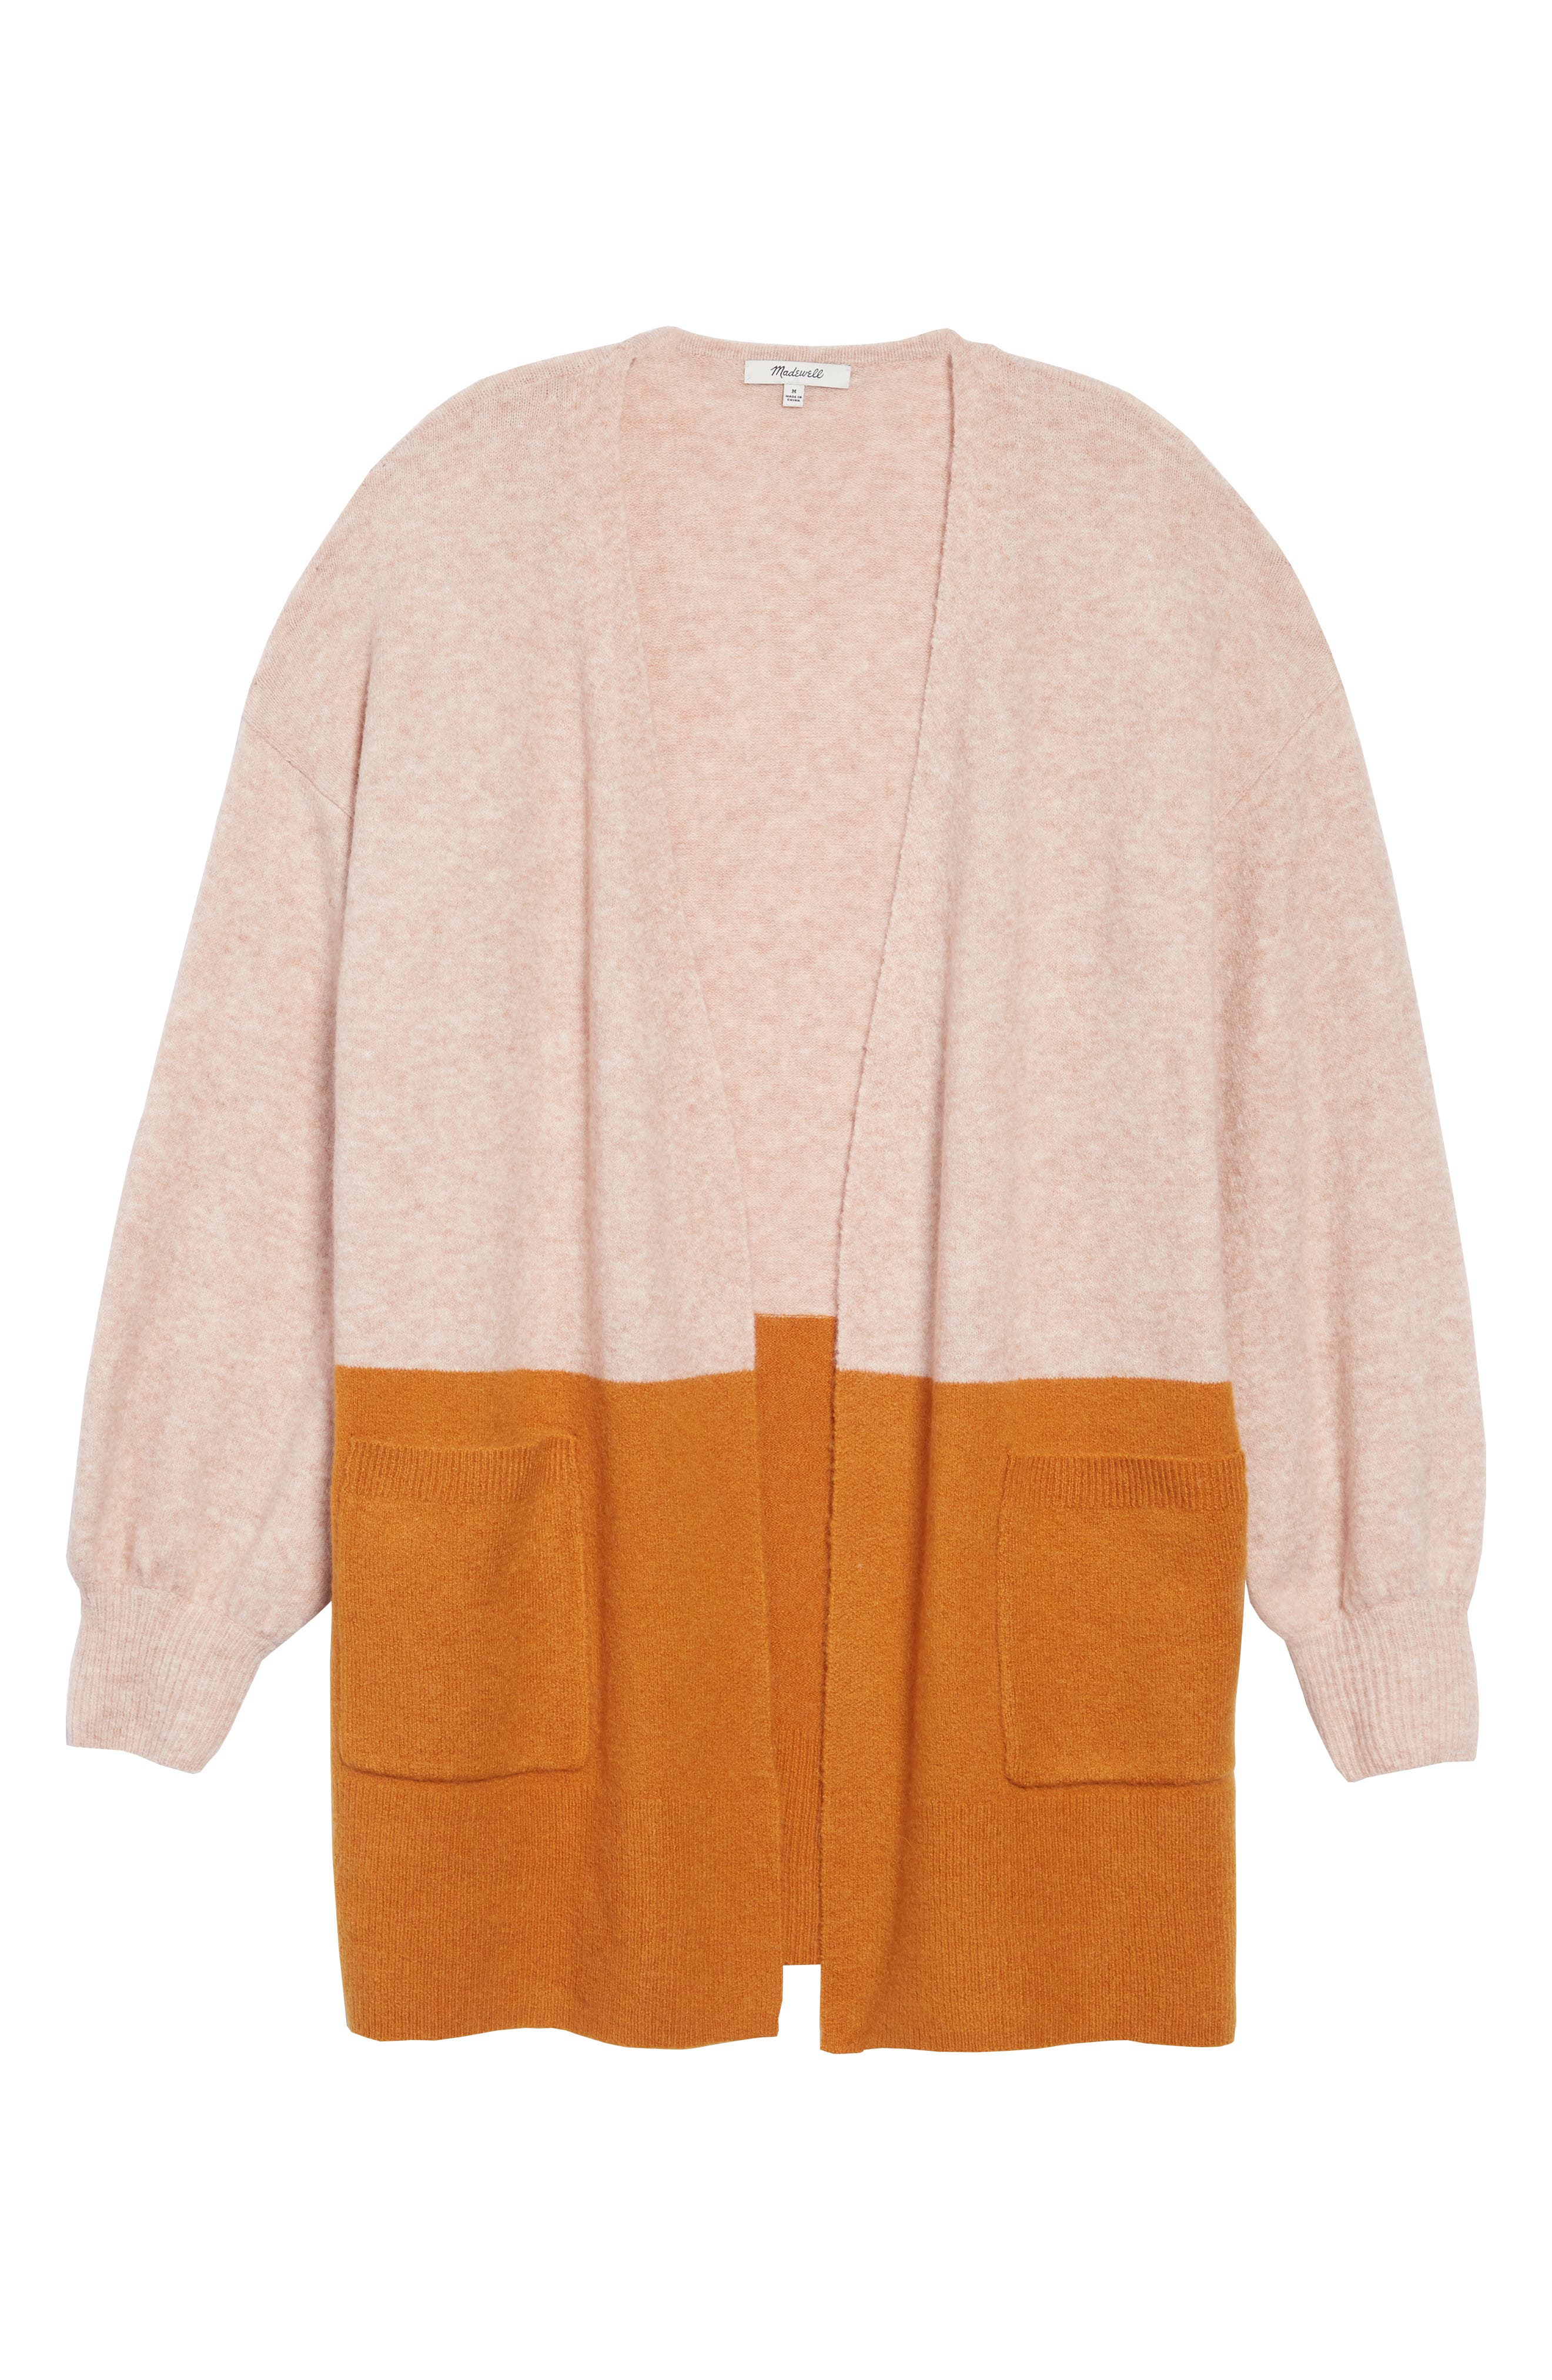 Plus Size Madewell Edgewater Colorblock Cardigan, Size - Pink